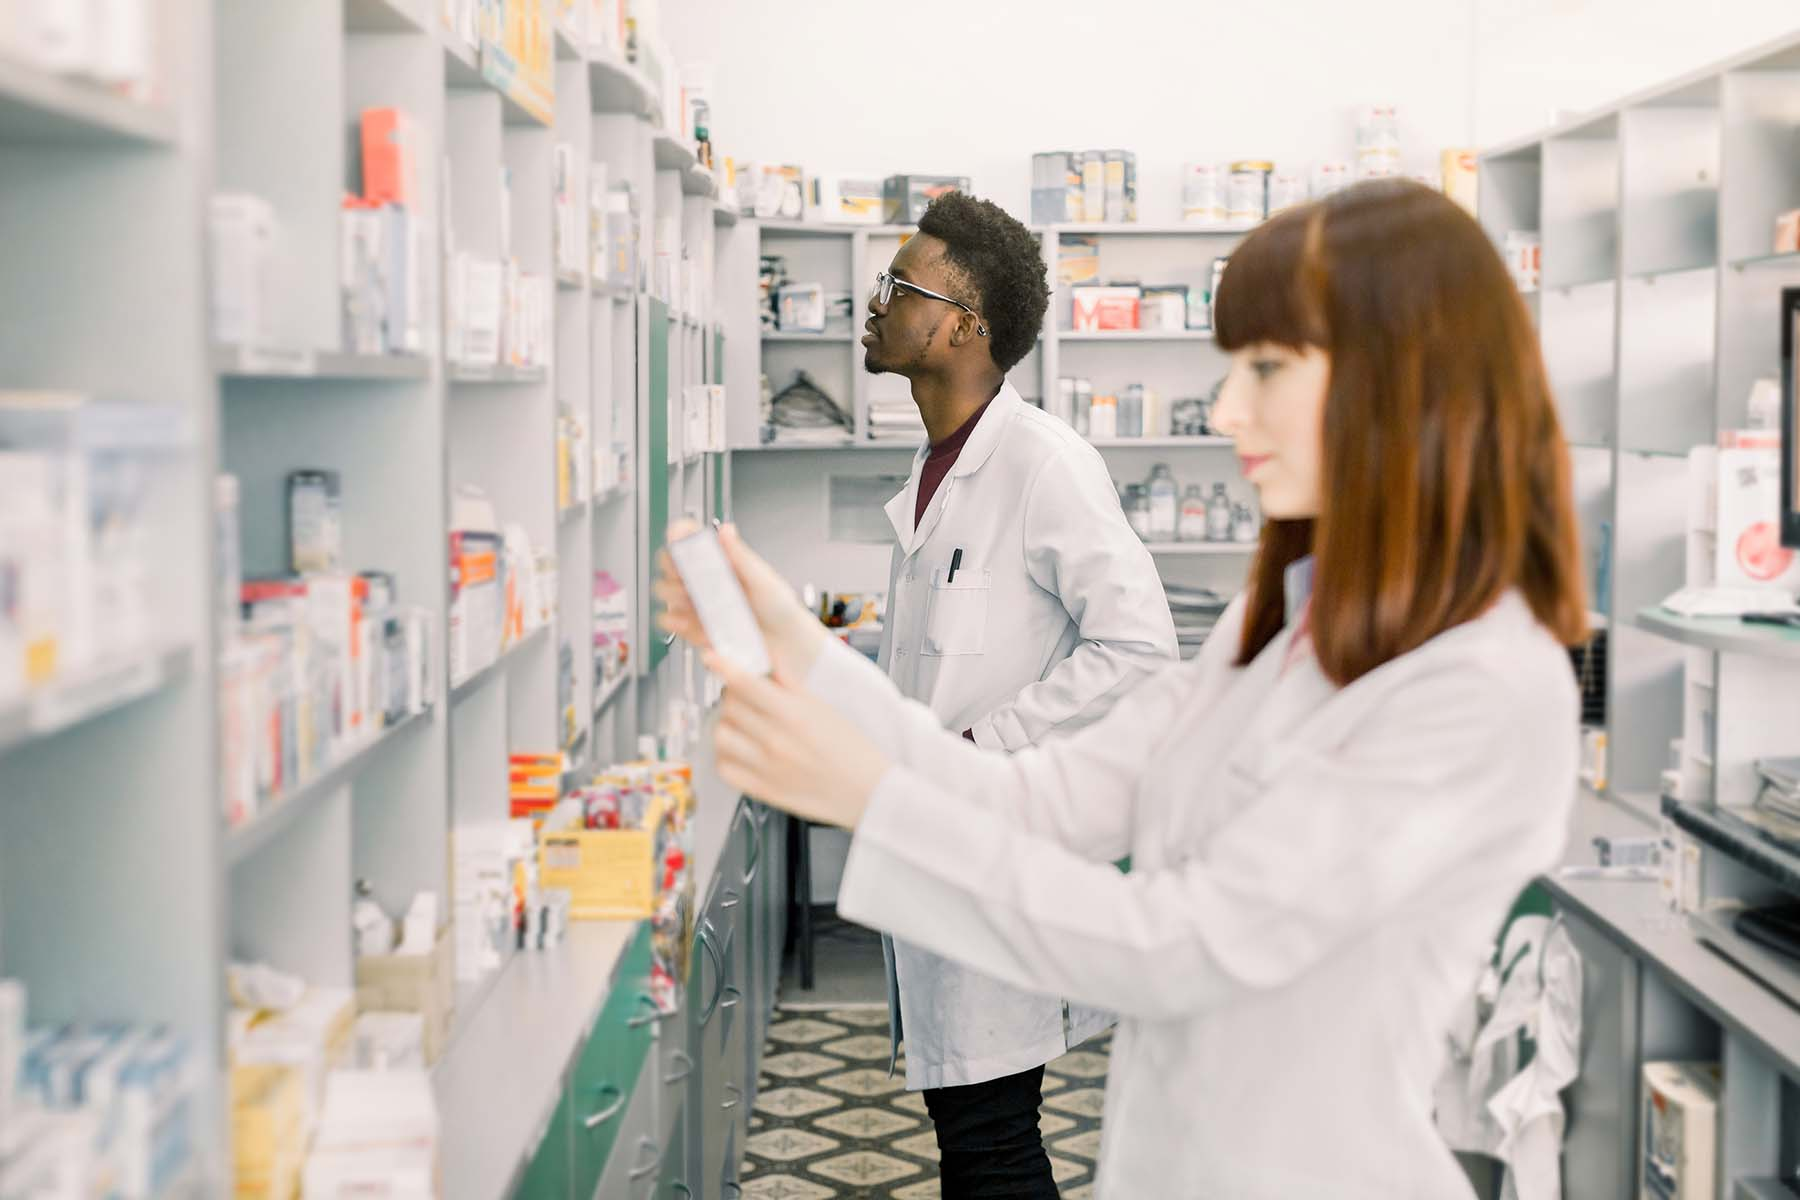 What Qualifications Do You Need to Become a Pharmacist?